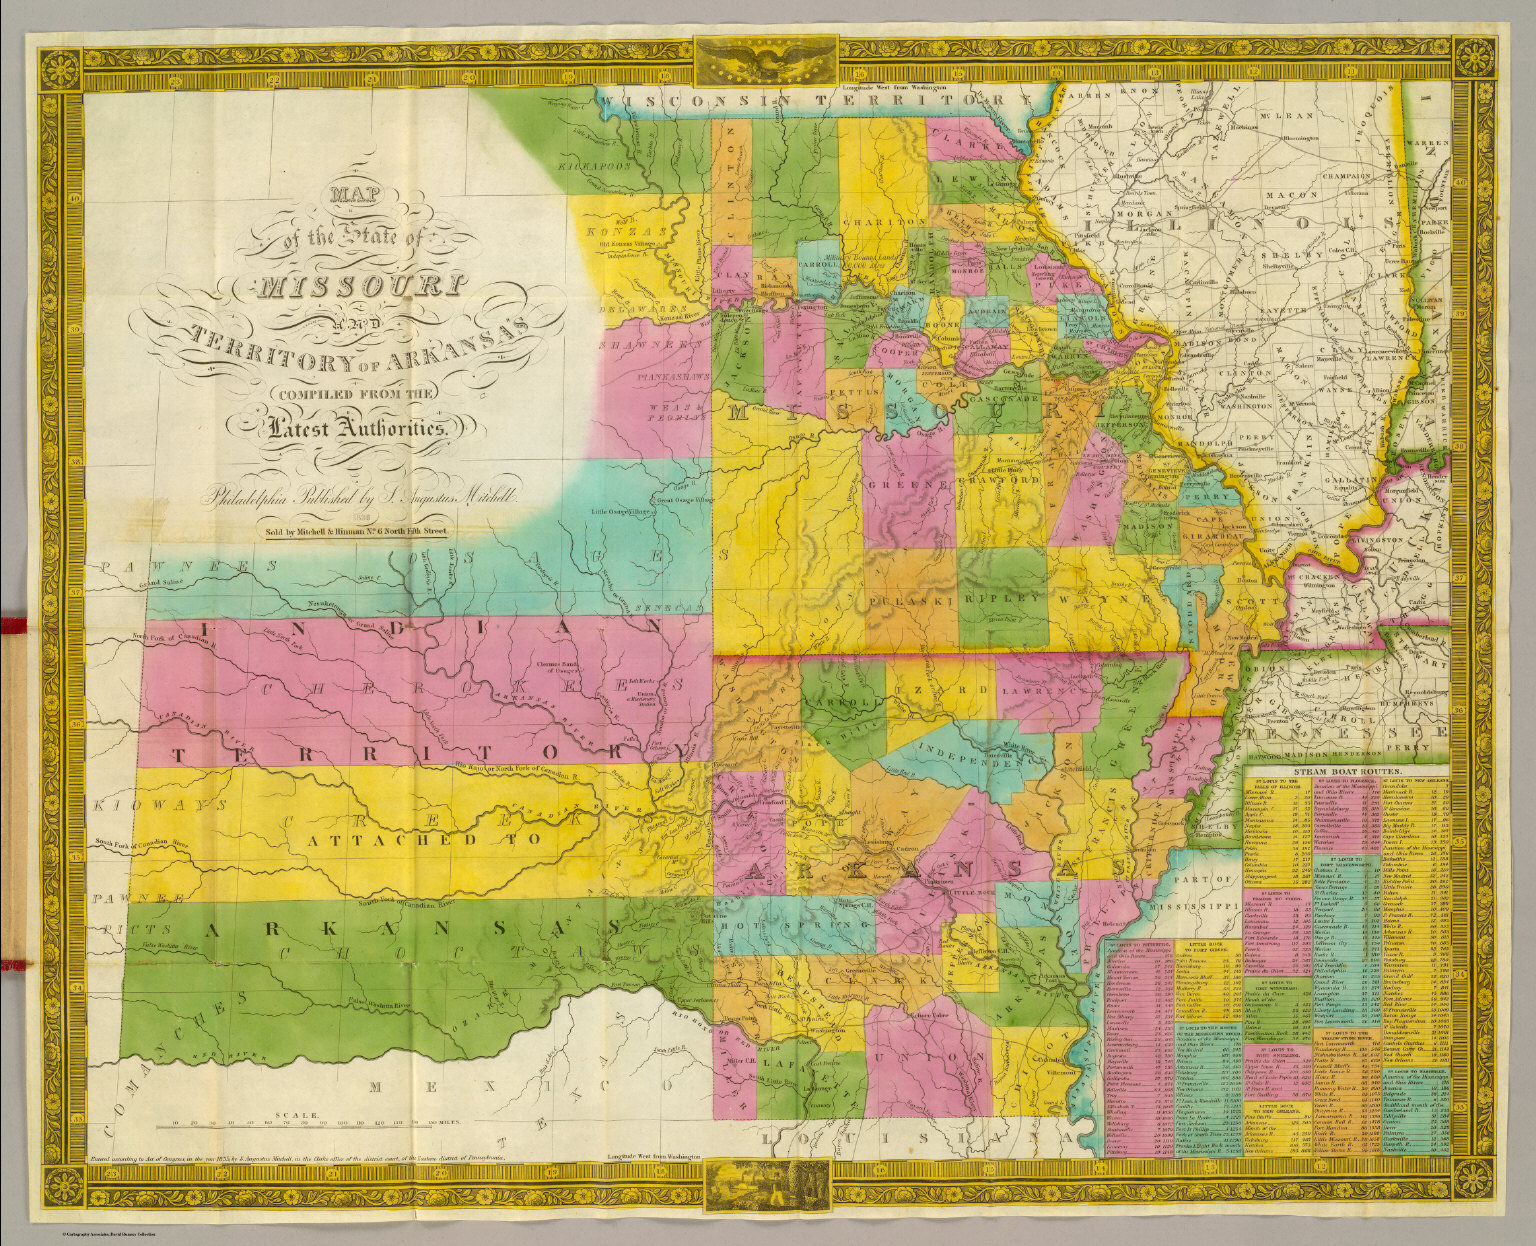 Map of the State of Missouri And Territory of Arkansas David